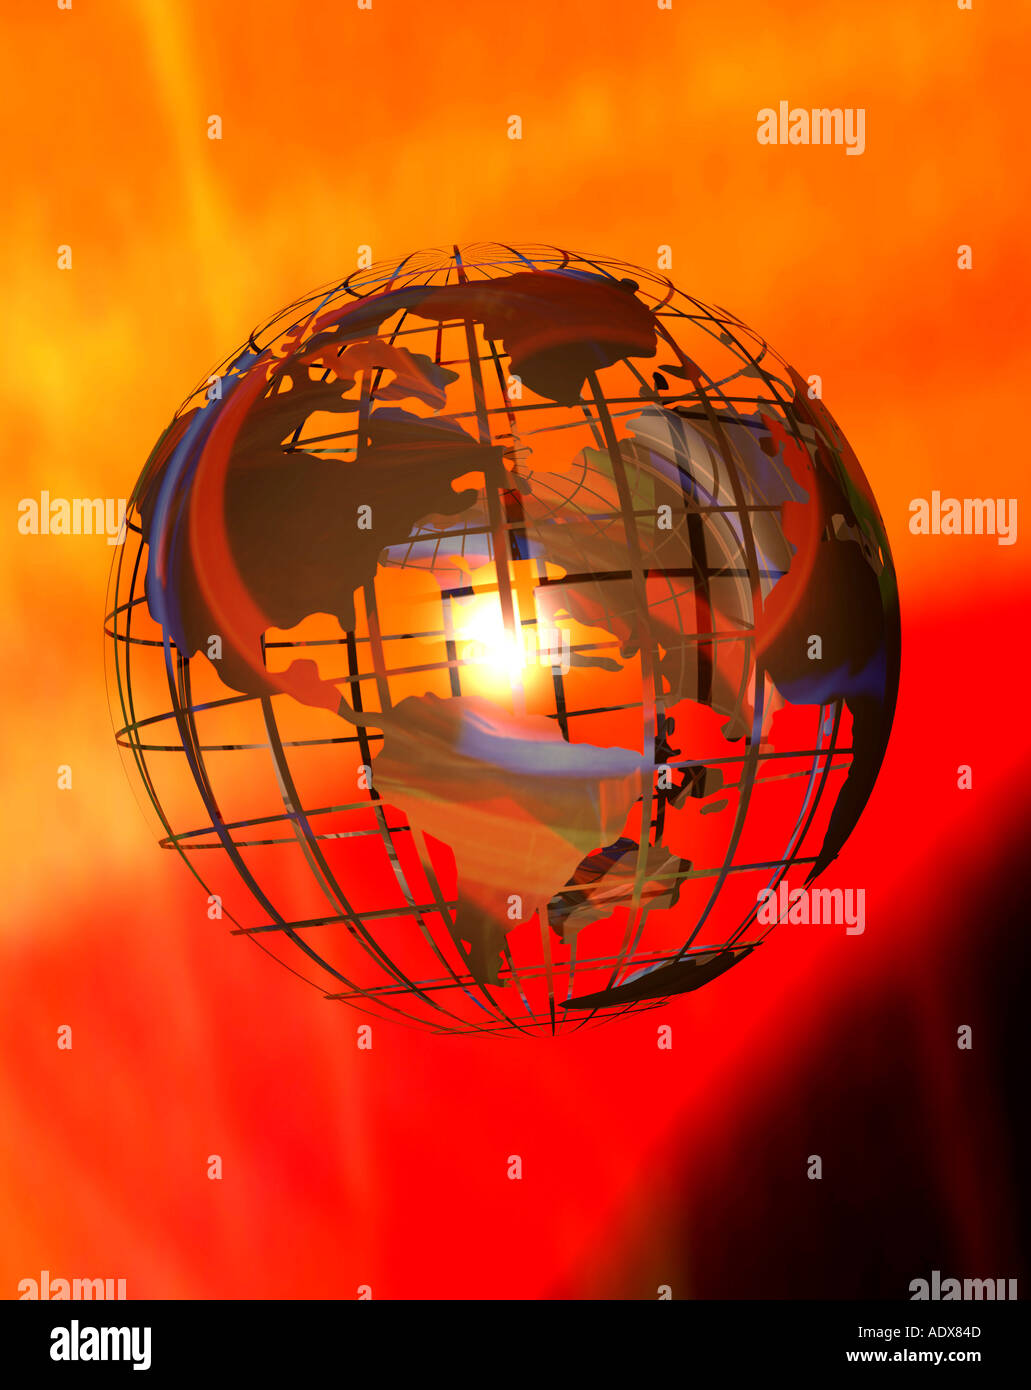 Illustrations www world wide web internet planet at frame tracks fiery background map globe miscellaneous background texture - Stock Image